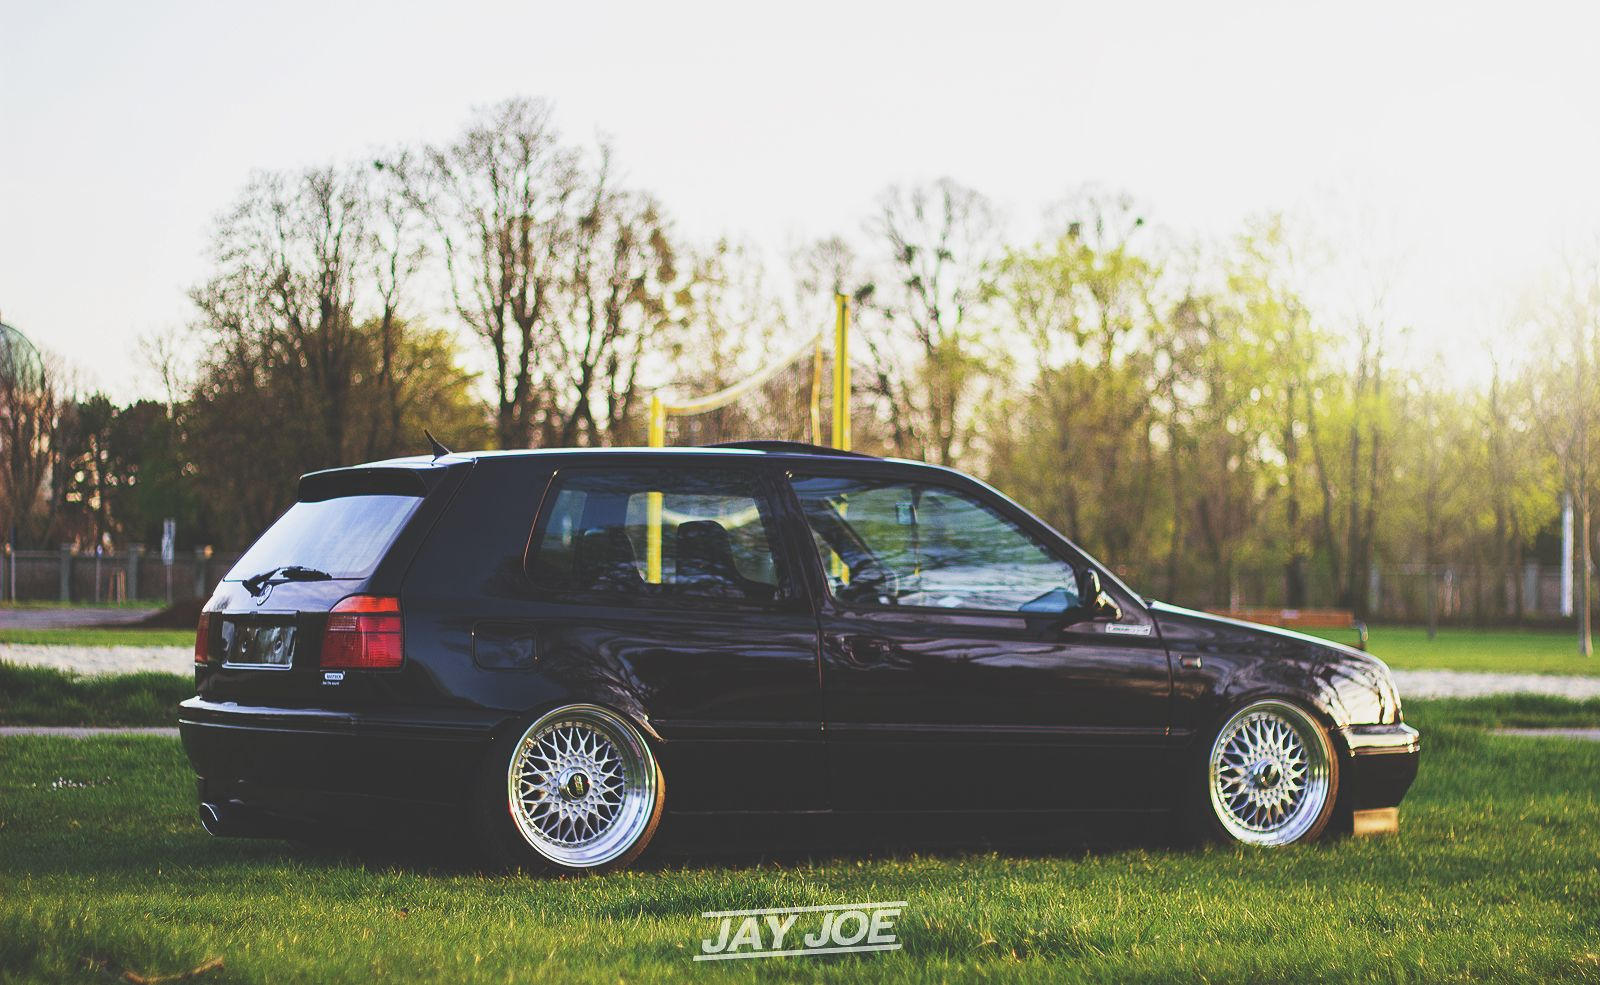 vw golf mk3 vr6 golf 39 s pinterest golf mk3 vw and golf. Black Bedroom Furniture Sets. Home Design Ideas